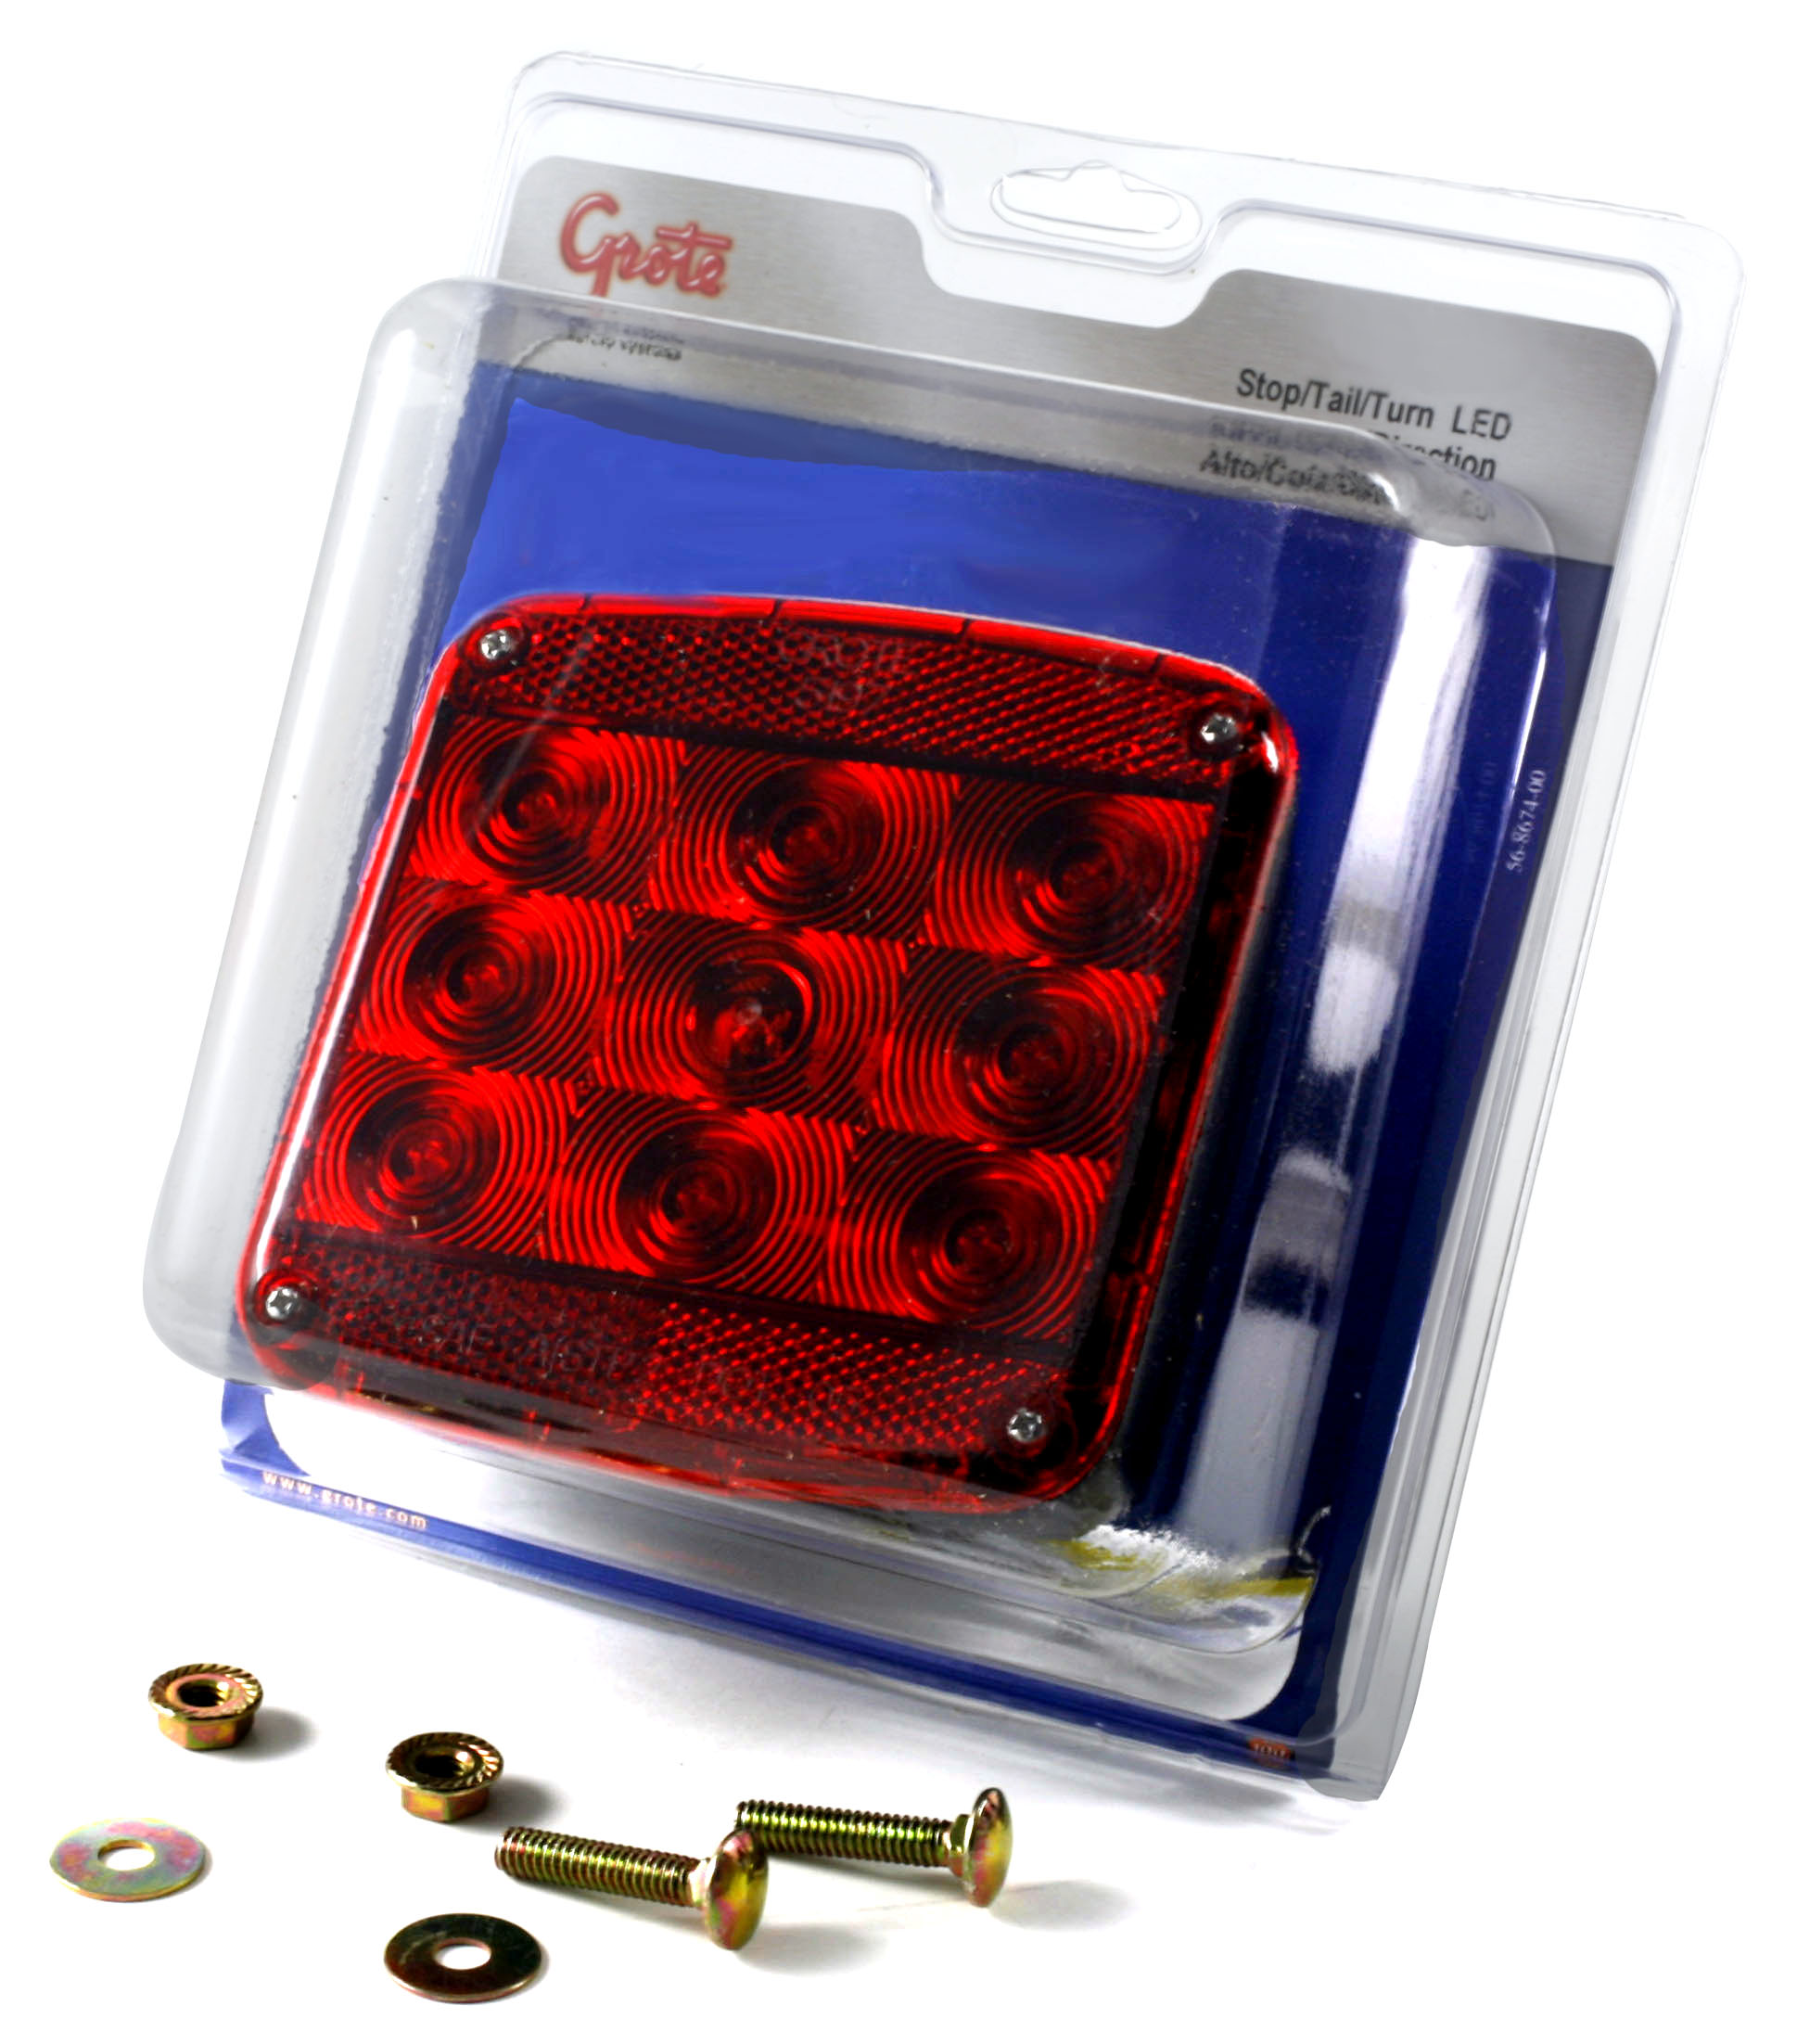 Grote Industries - 51962-5 – LED RH Stop Tail Turn Replacement for Submersible Trailer Lighting Kit, Red, Retail Pack